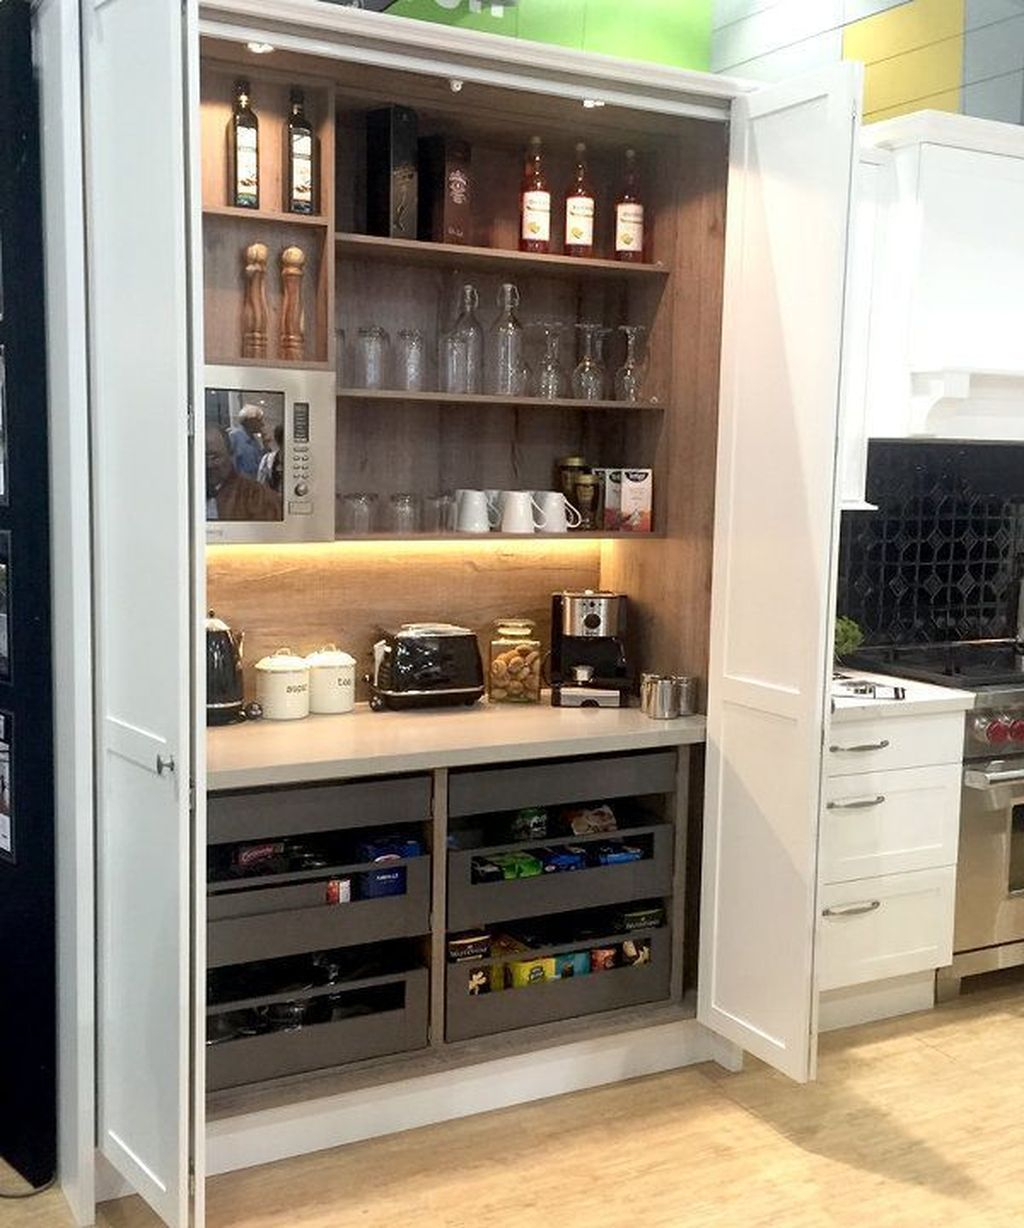 Cool Diy Kitchen Design Ideas You Will Definitely Want To Keep 34